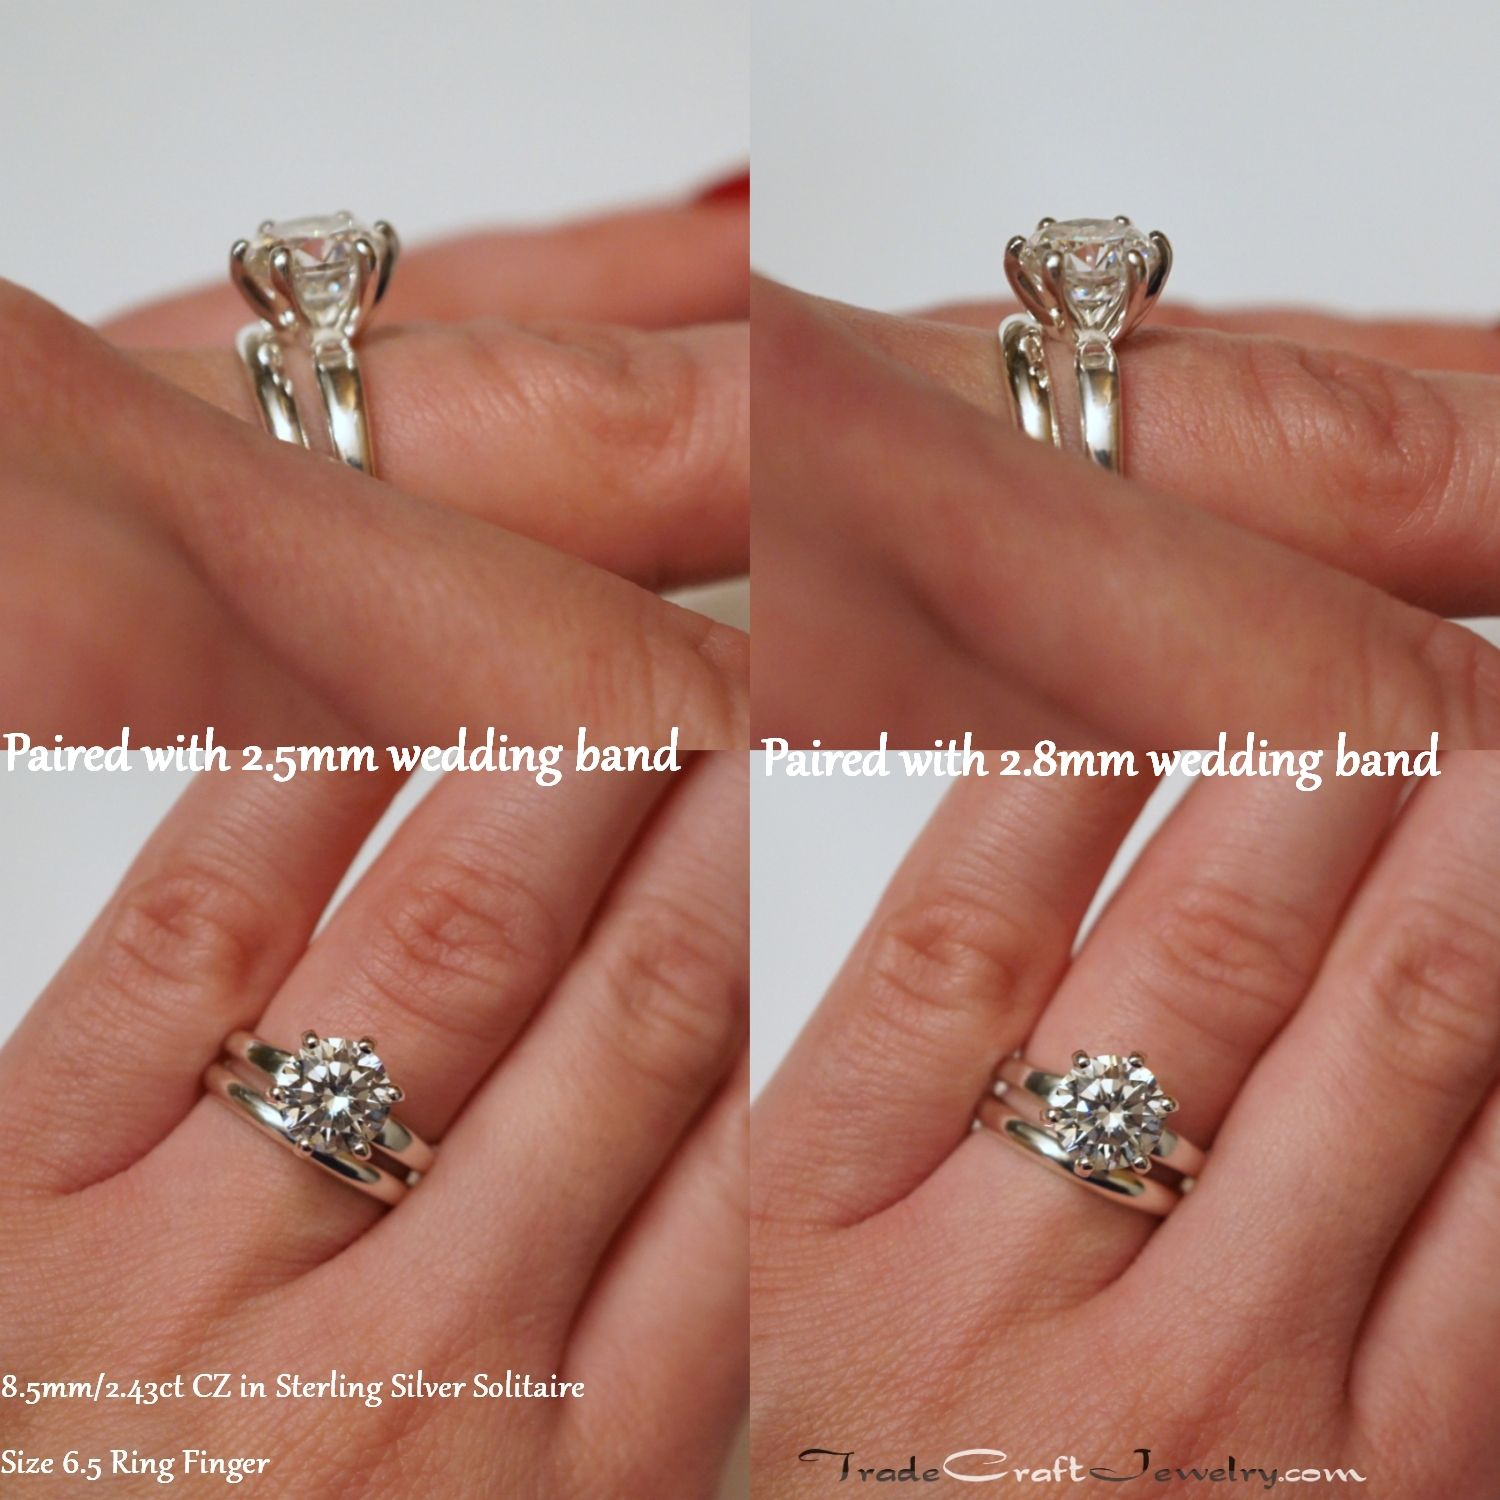 6 Prong CZ Engagement Ring Paired with 2 5mm or 2 8mm Wedding